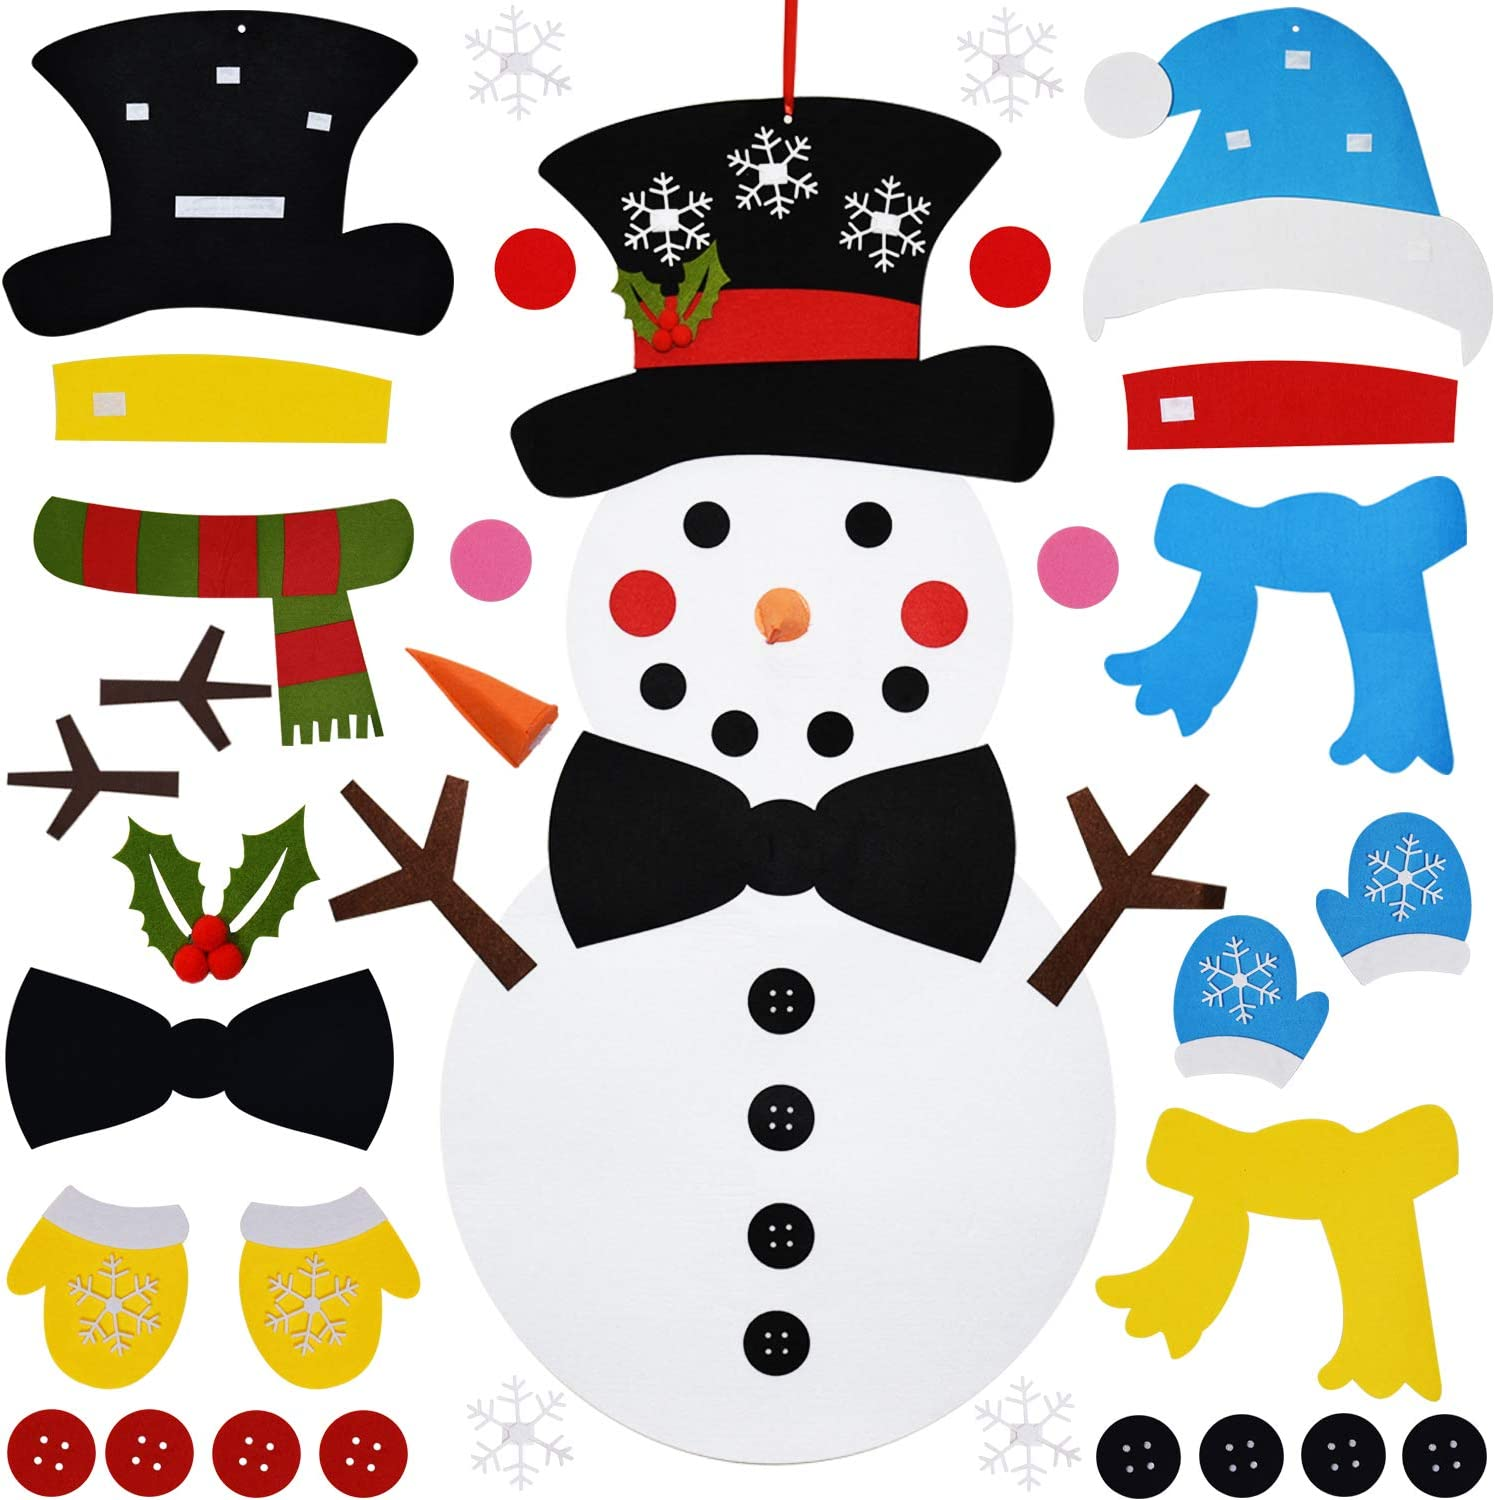 THAWAY DIY Felt Christmas Snowman with 38 Pcs Detachable Ornaments, Xmas Gifts for Kids New Year Handmade Christmas Door Wall Hanging Decorations